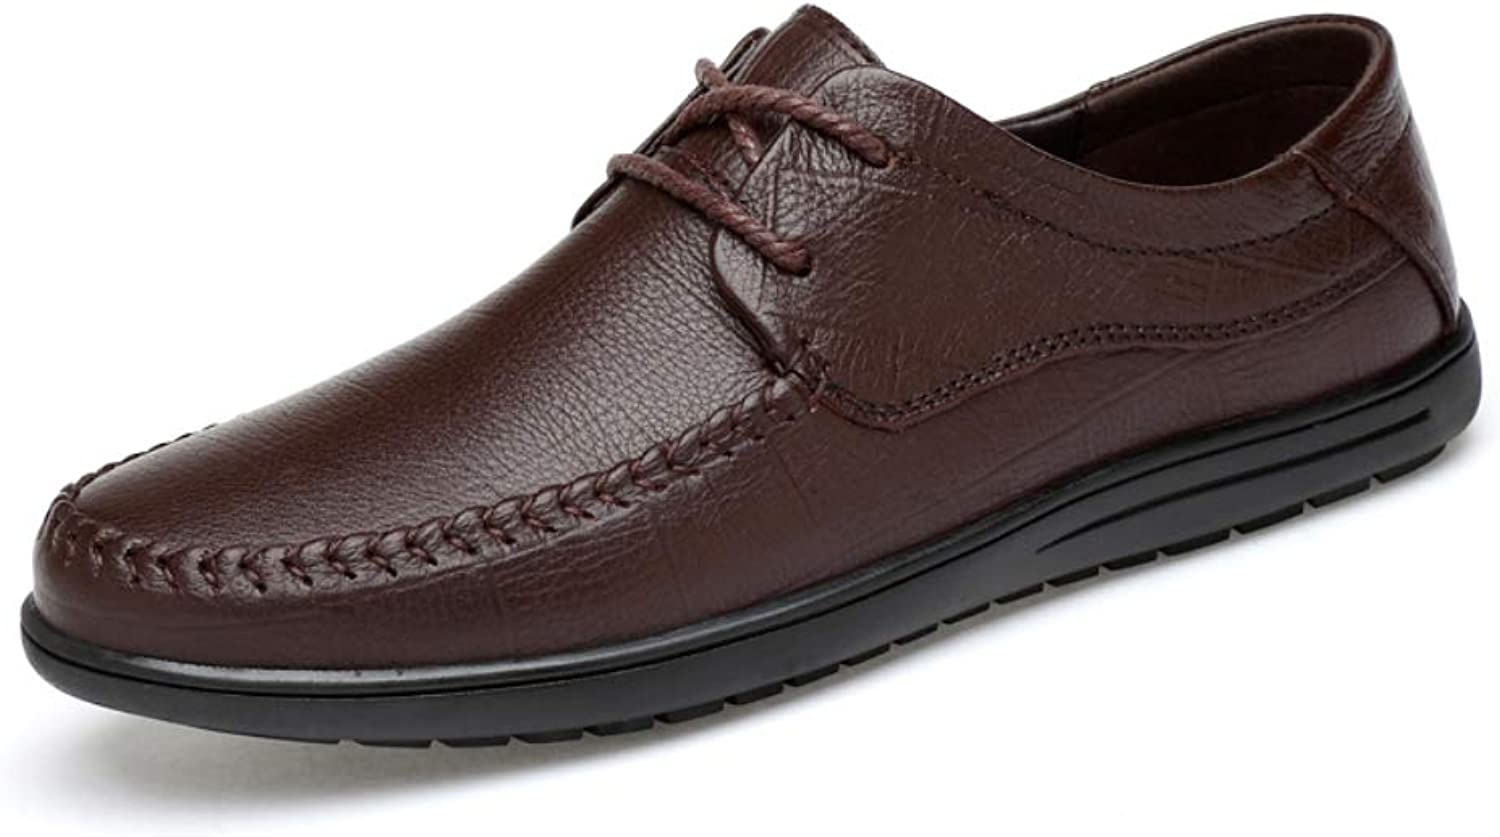 Men's Lace-Up Casual shoes Leather Business Oxford shoes